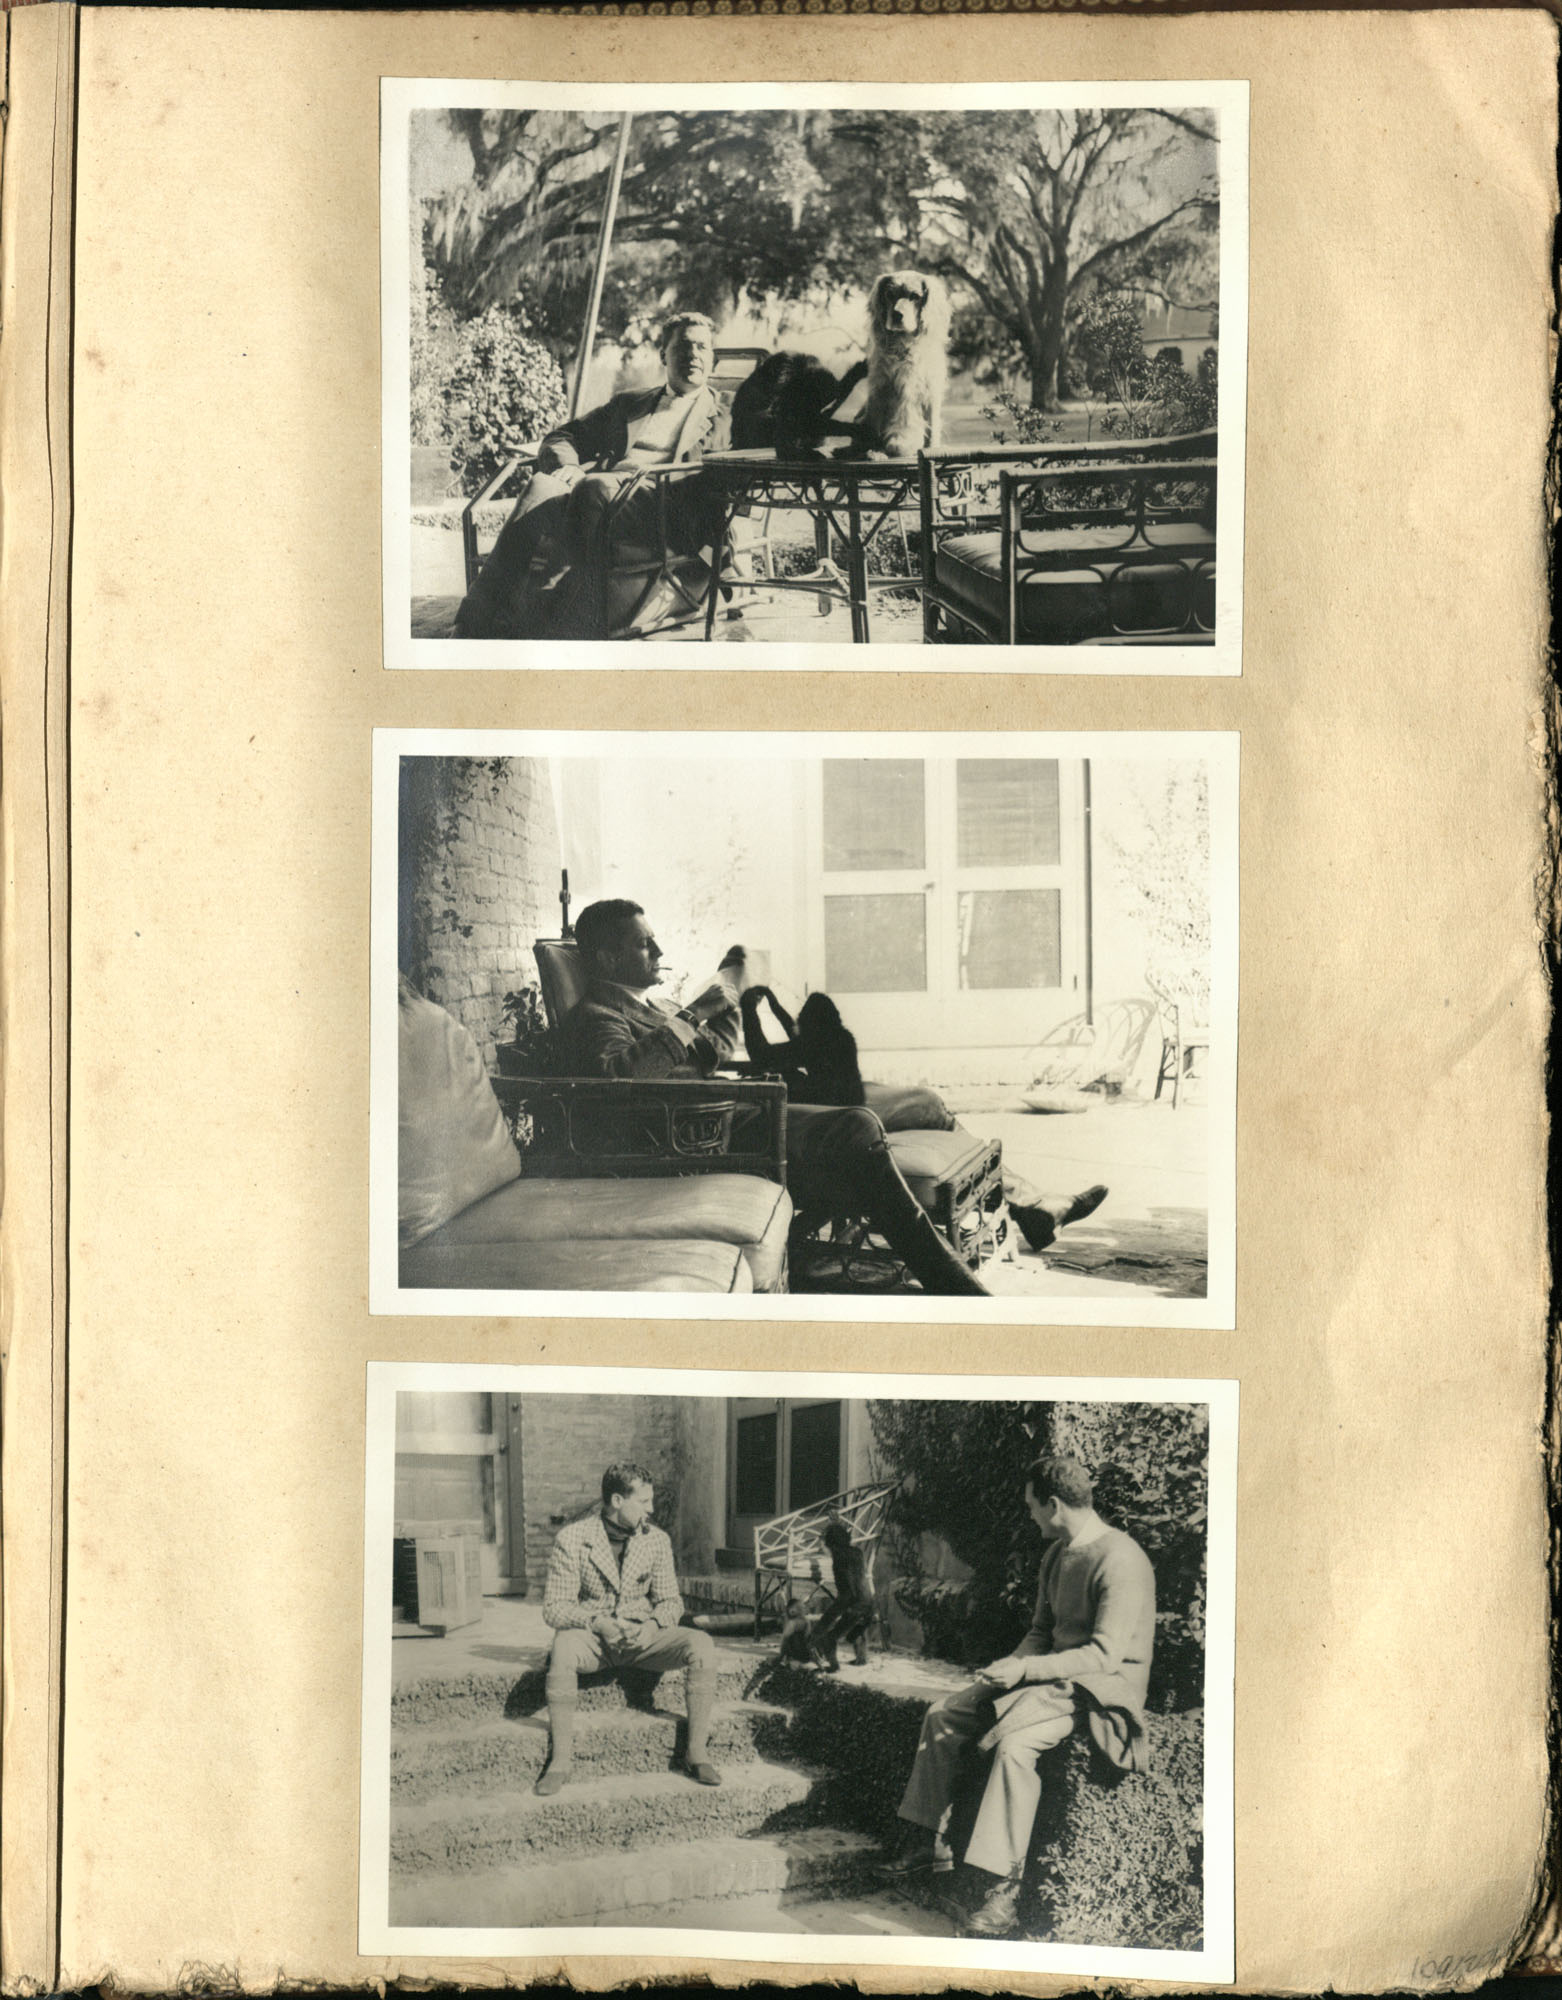 Early Medway and travels album, 1929-1937, page 109